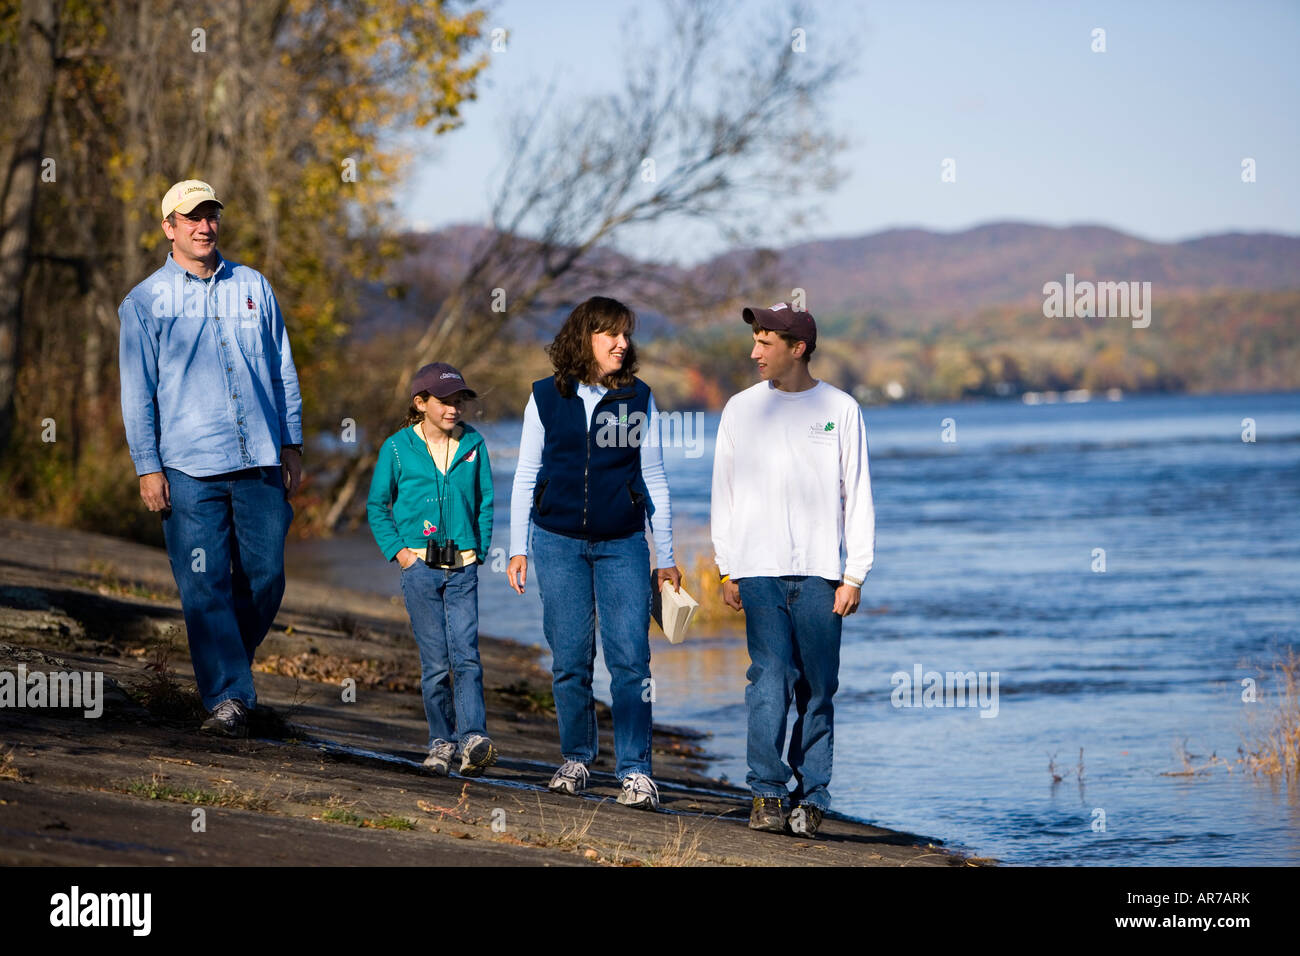 Family walks along the banks of the Connecticut River in Holyoke, Massachusetts. - Stock Image